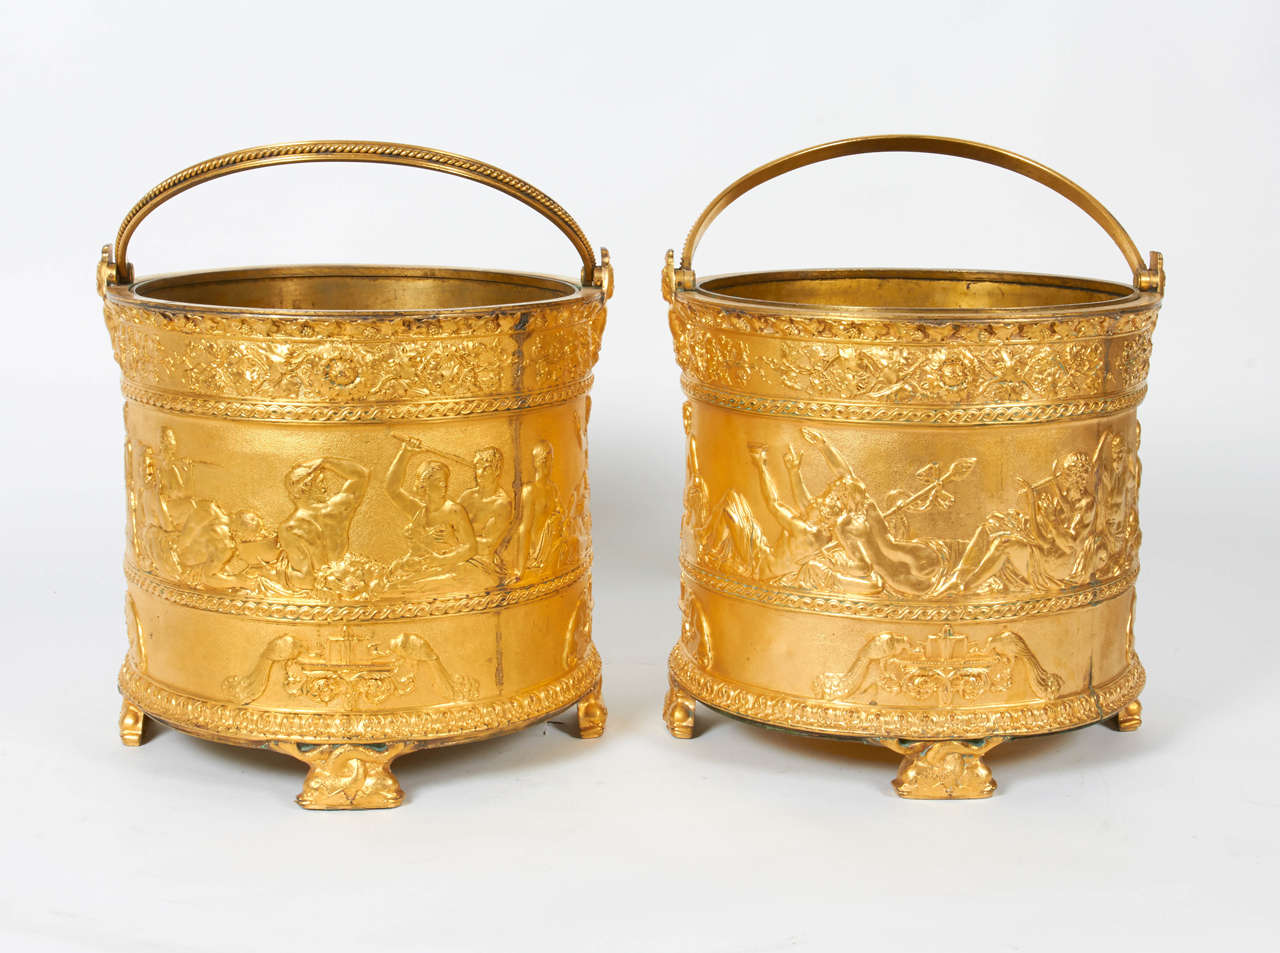 Fine pair of signed Elkington & Co gilt bronze Neoclassical Jardinière/Champagne ice buckets or wine coolers. Depicting new classical Roman figures and subjects with lions and leopards, birds drinking from fountains, and grape vines with dolphin